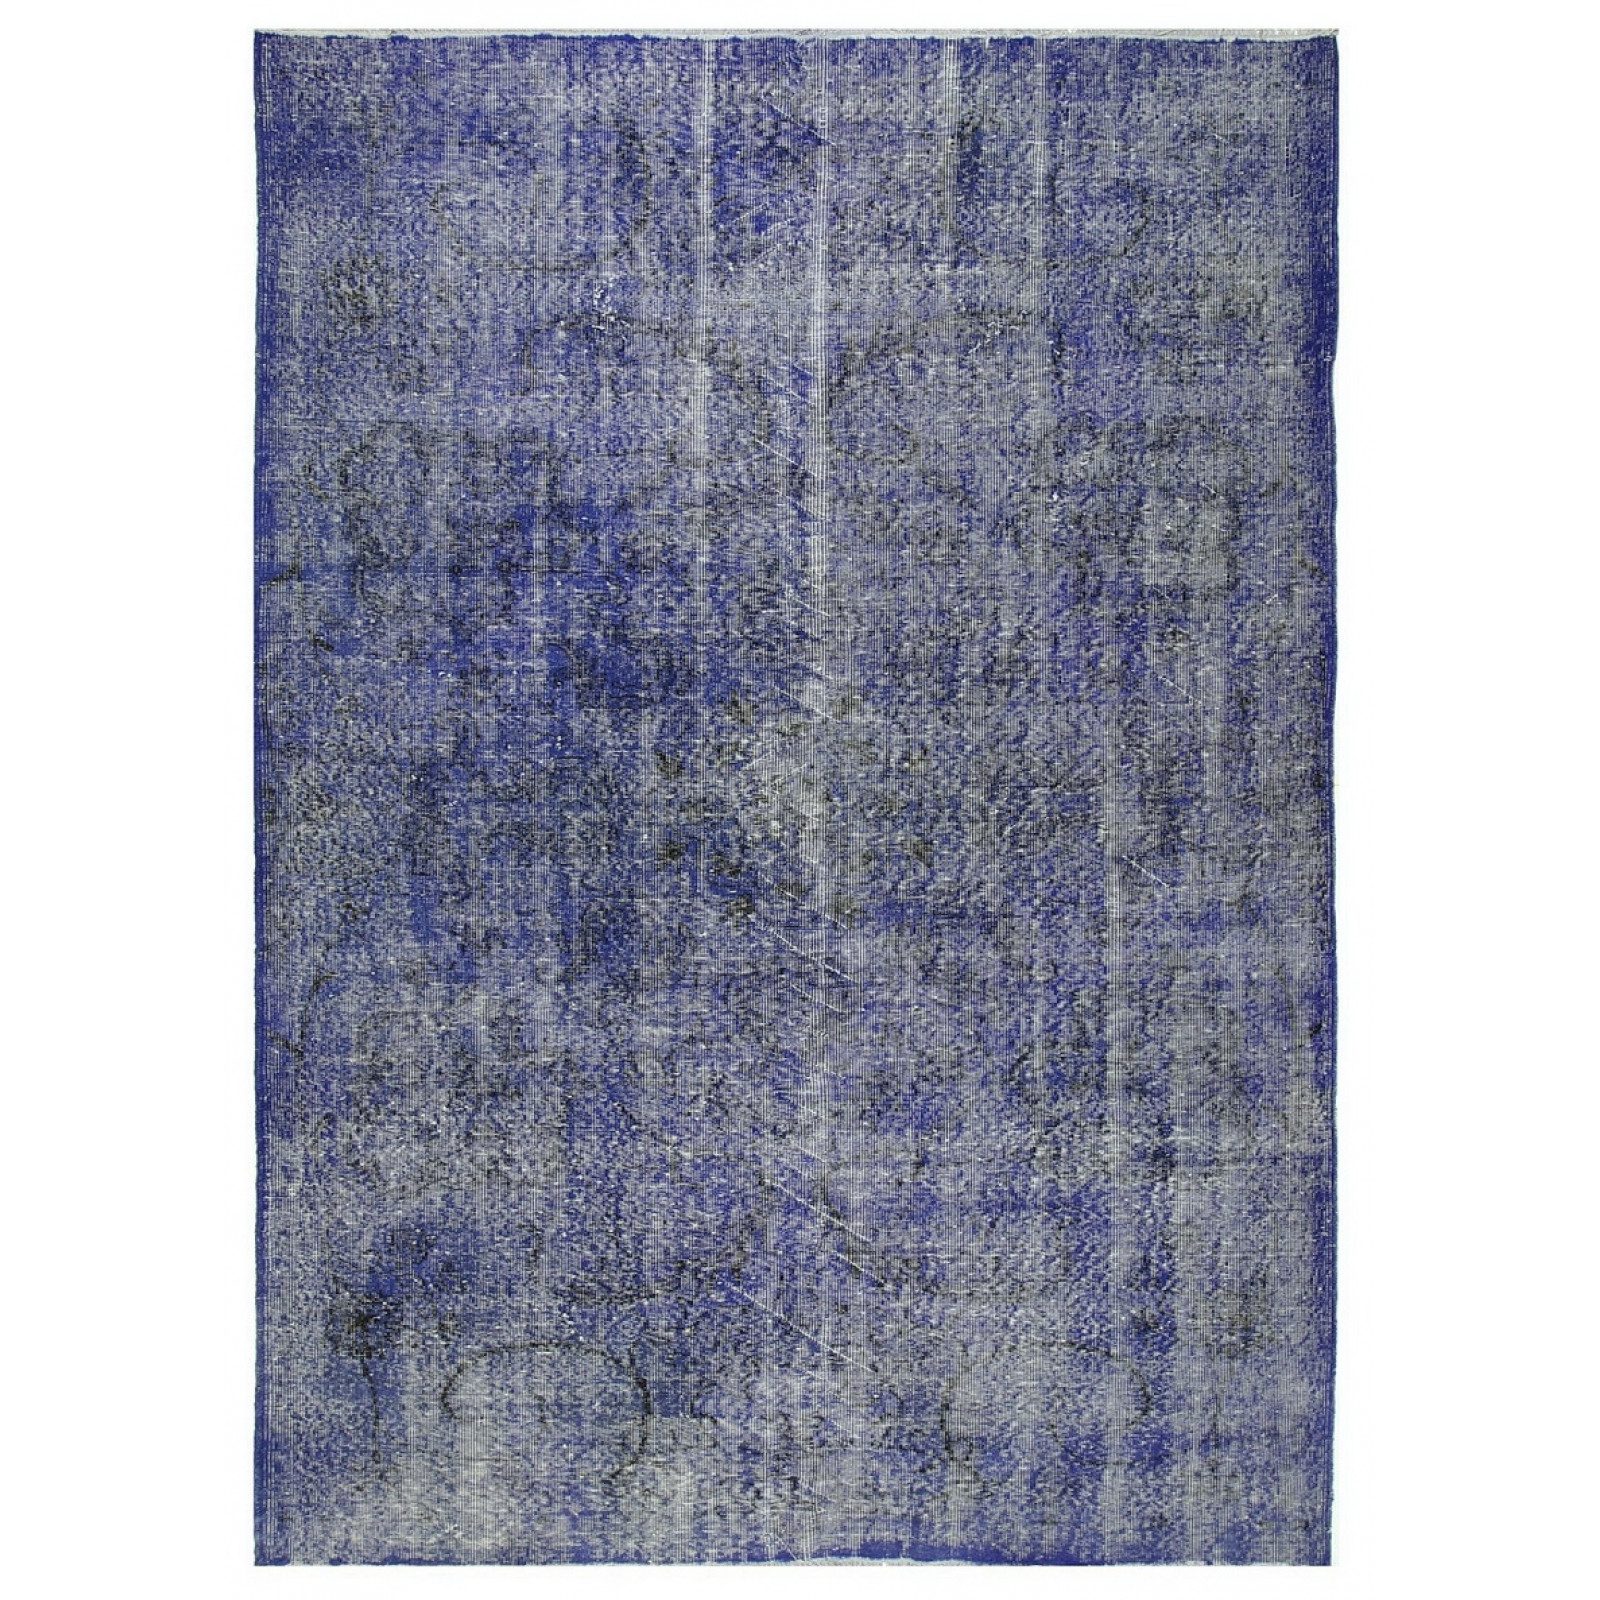 SALE 1641- Distressed Carpets -Old handmade carpets are collected from  different cities, towns and